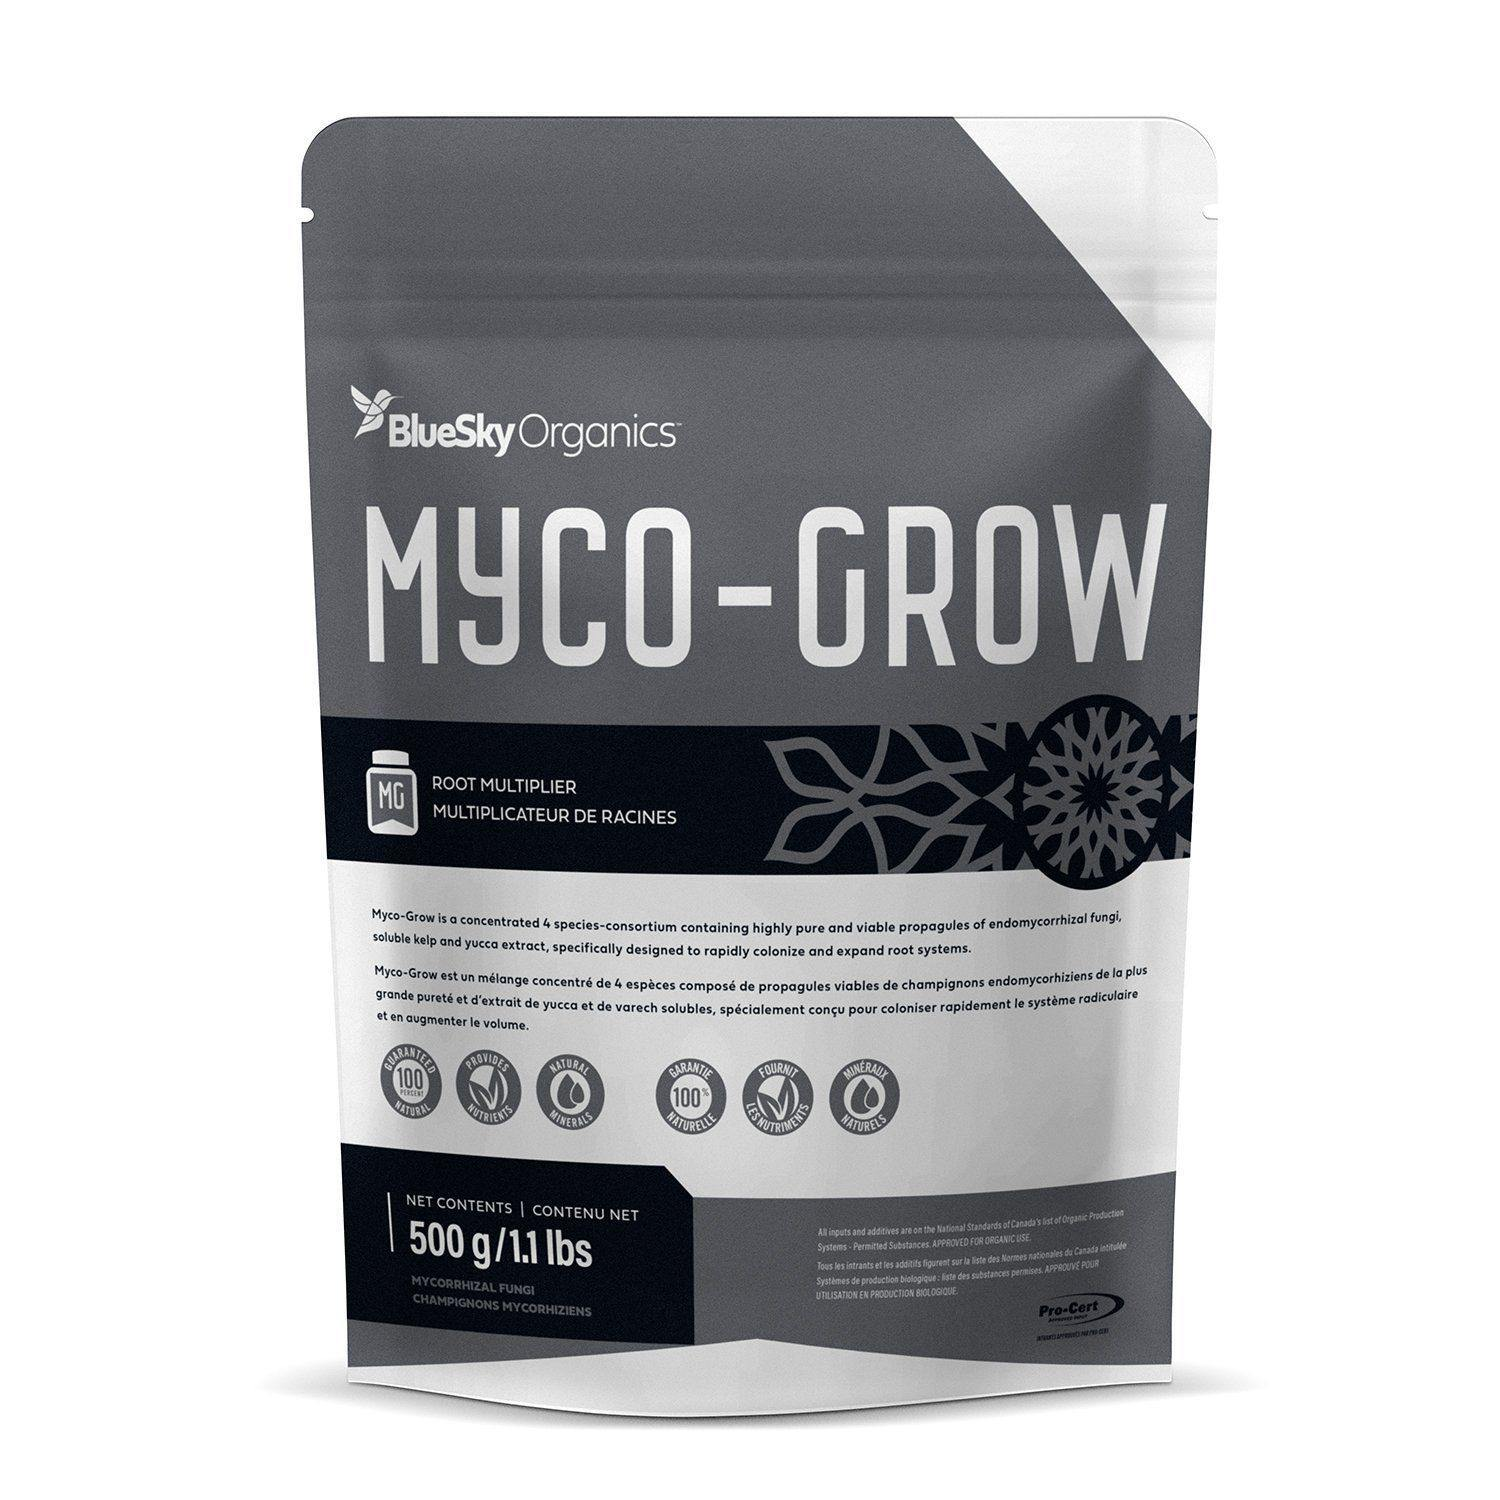 BlueSky Organics - Myco-Grow